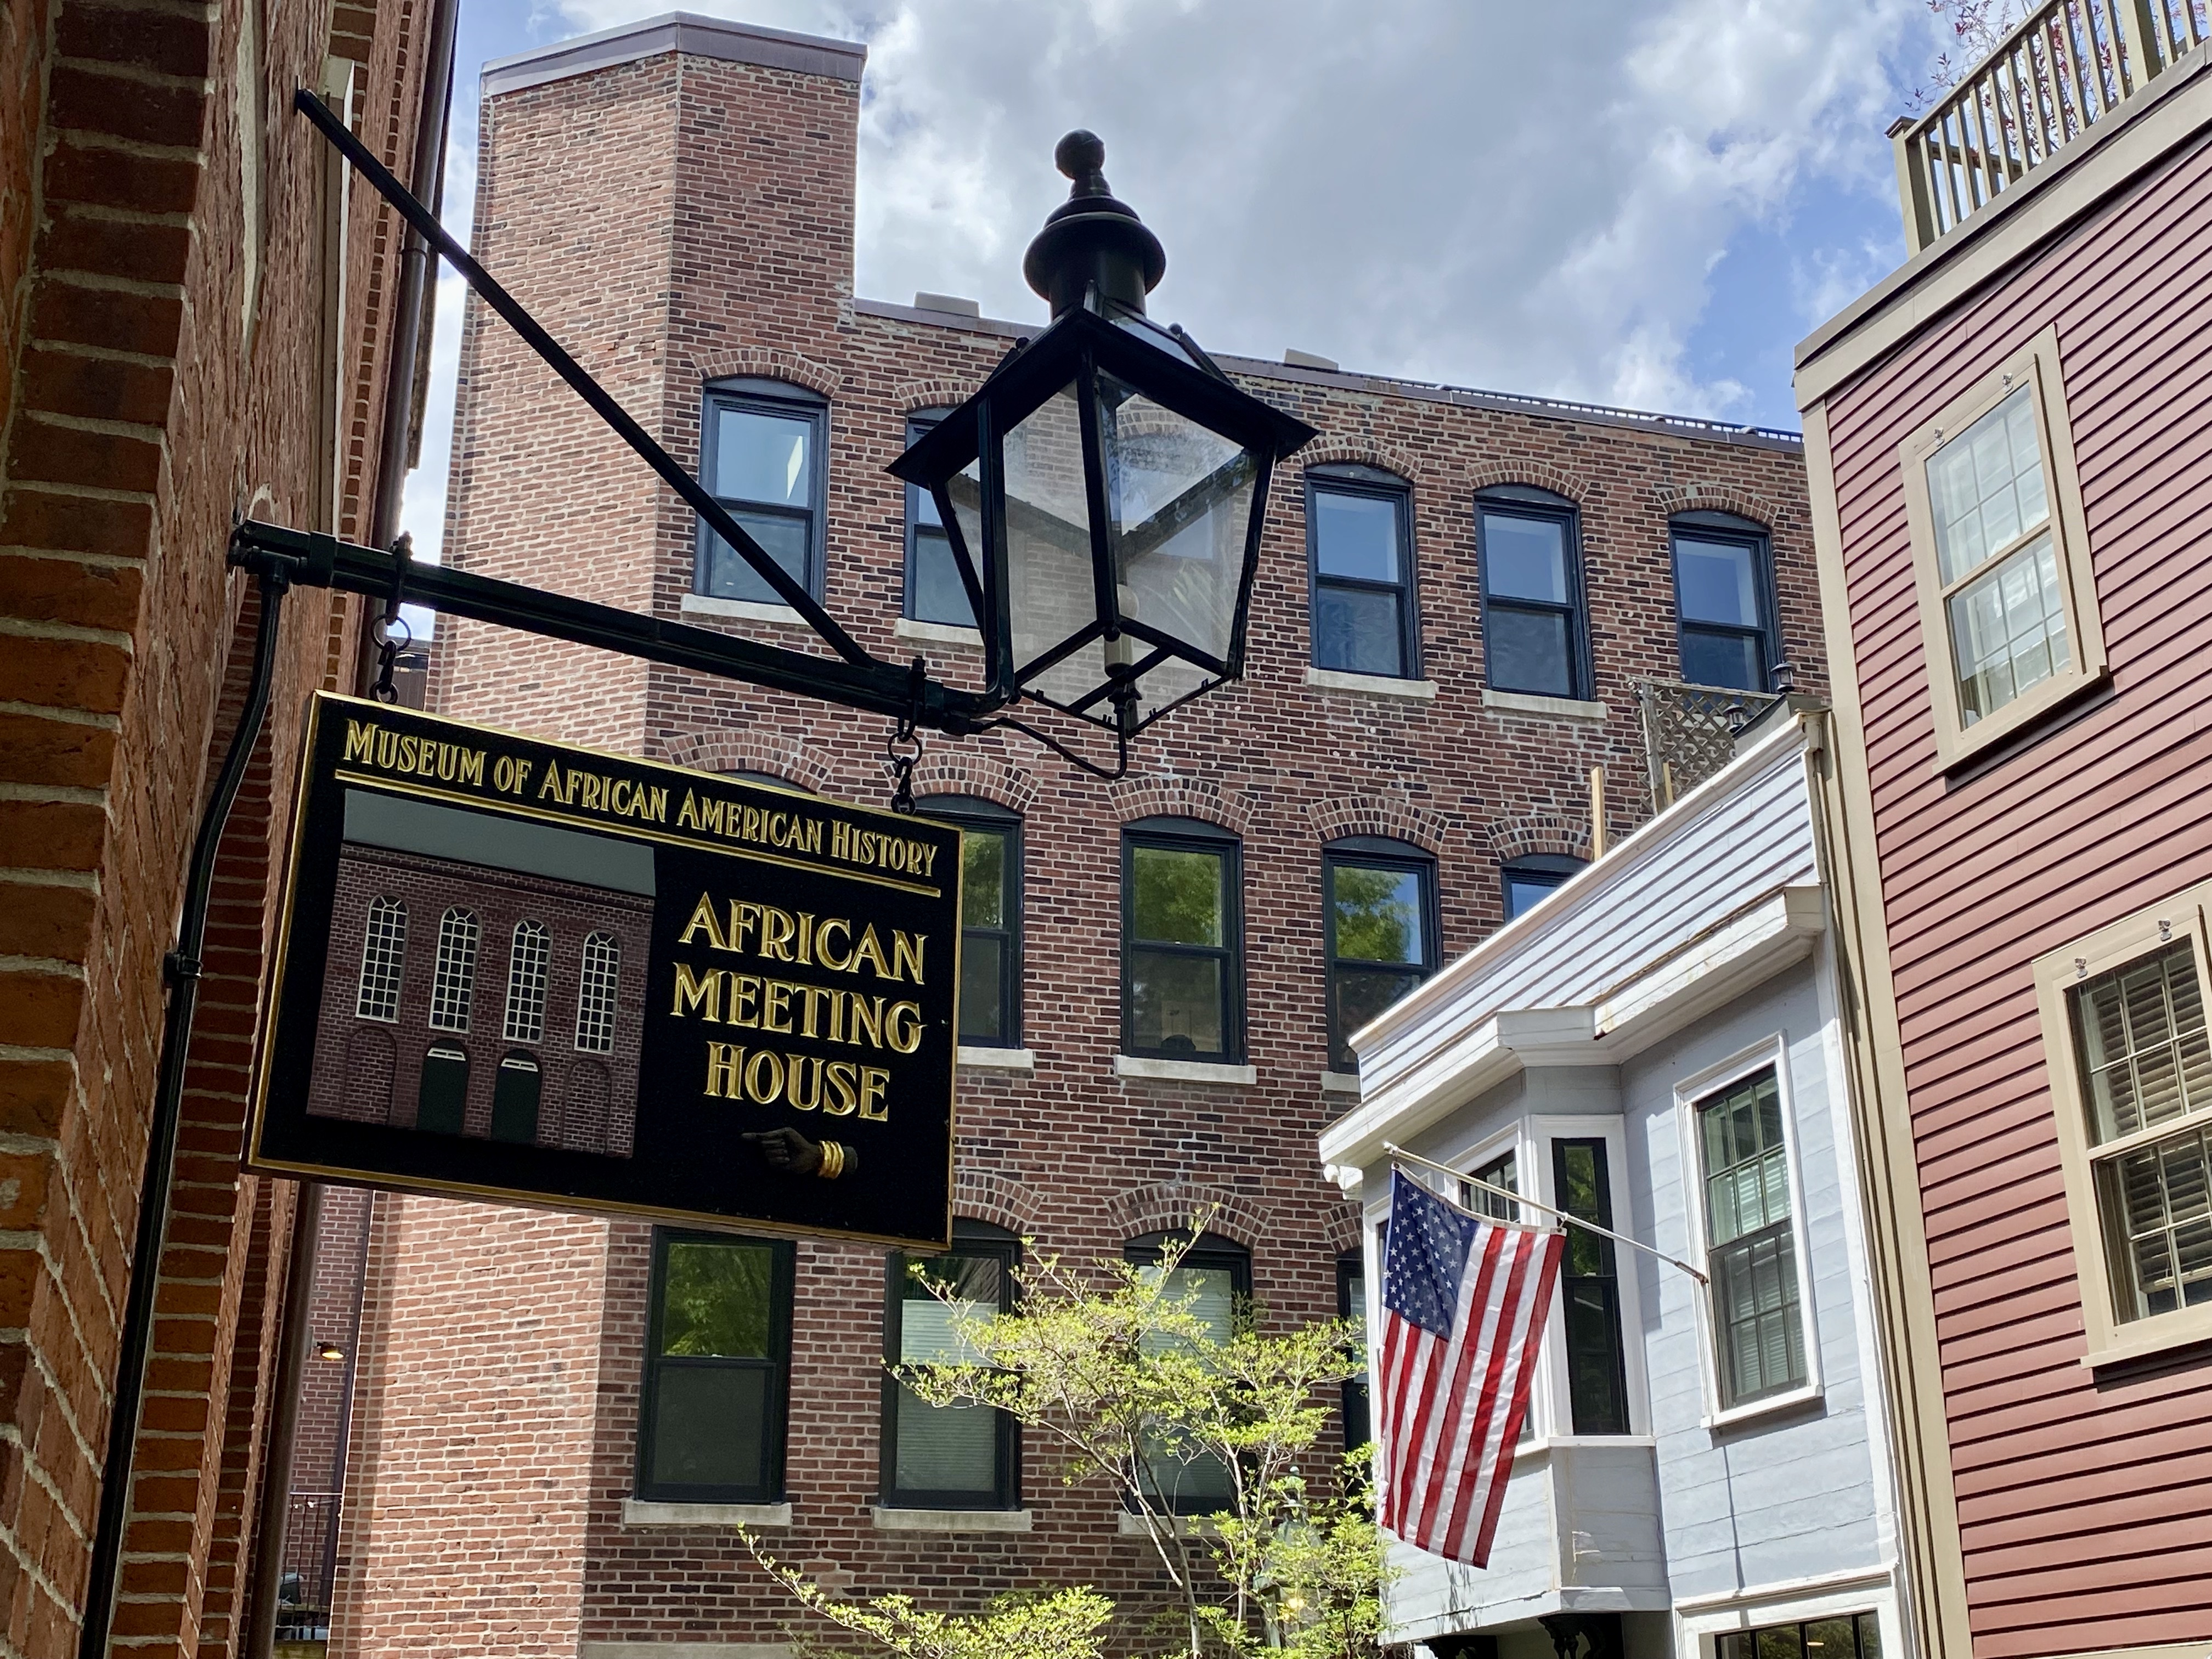 African Meeting House on Smith Ct